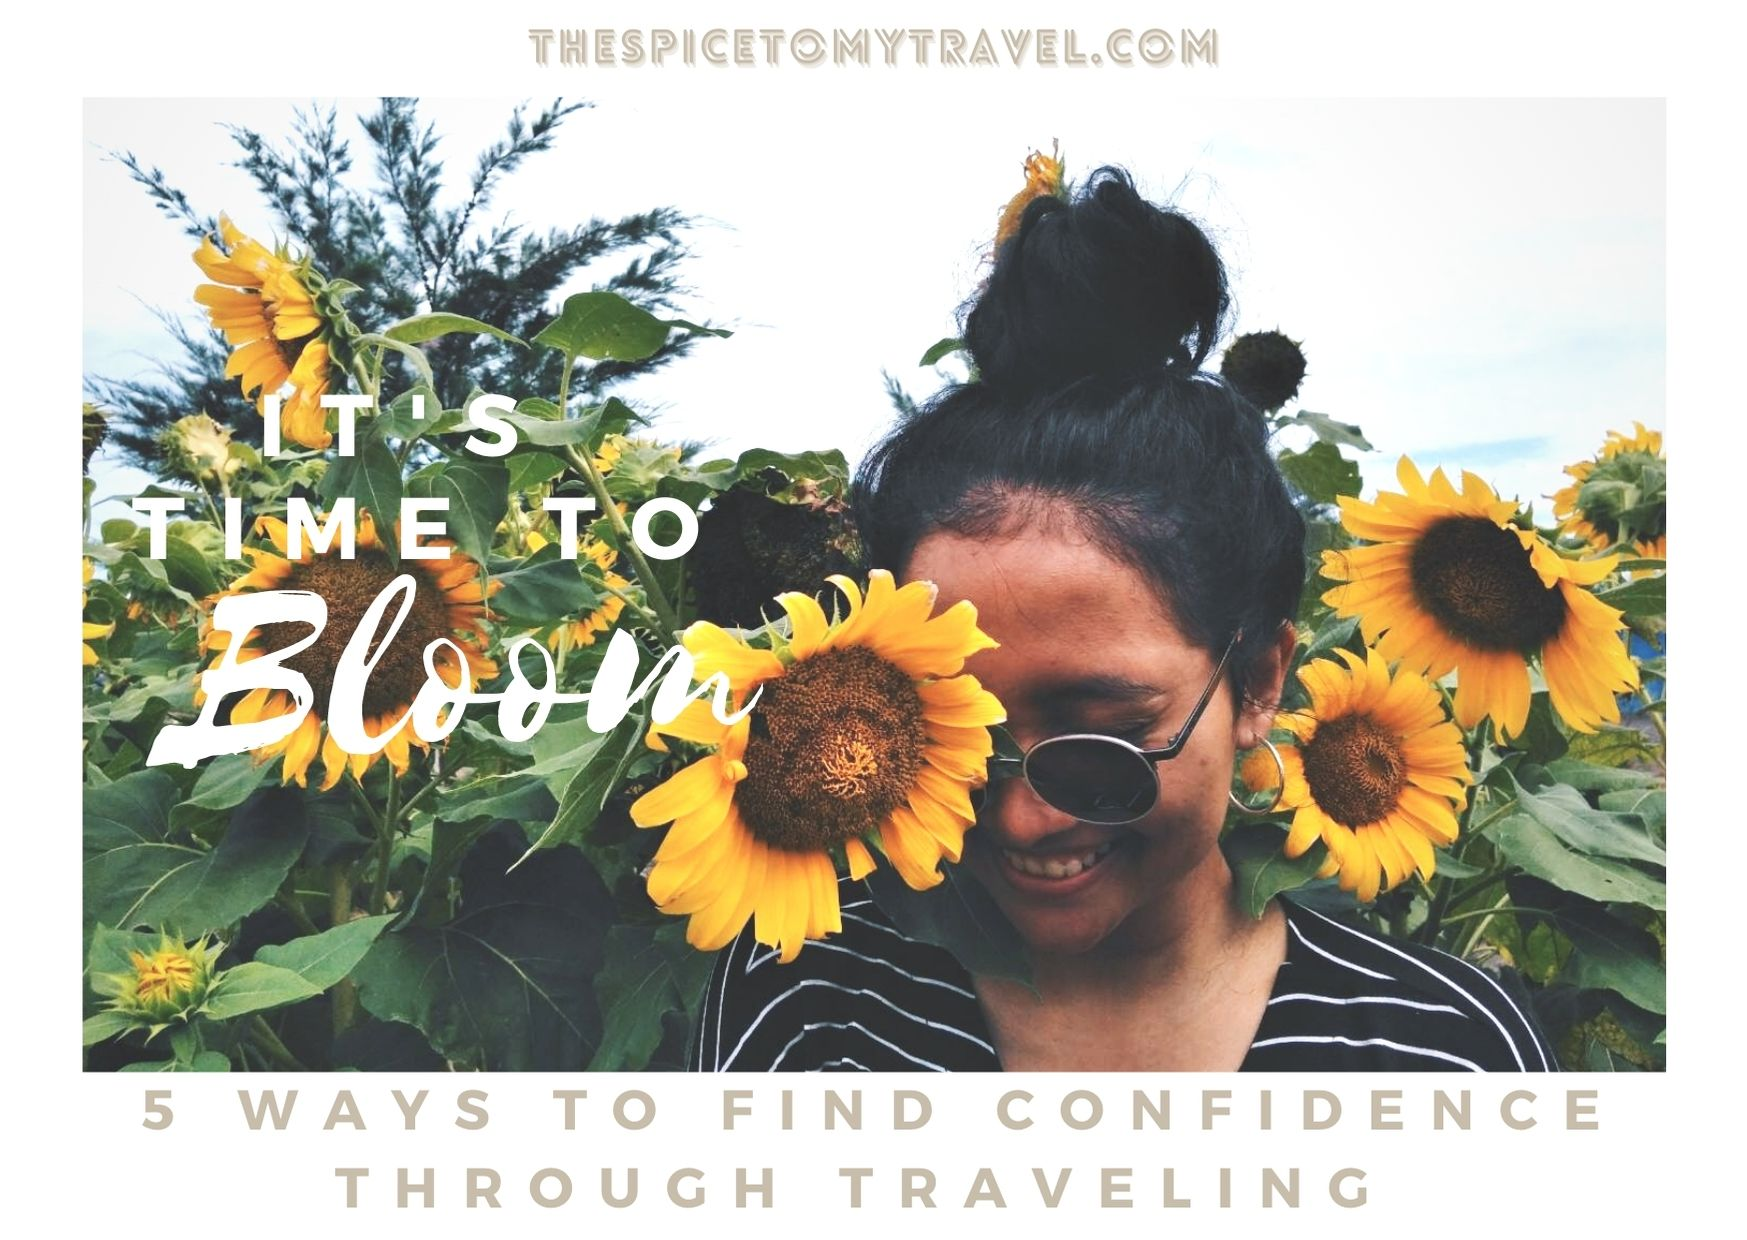 5 Ways To Find Confidence Through Traveling